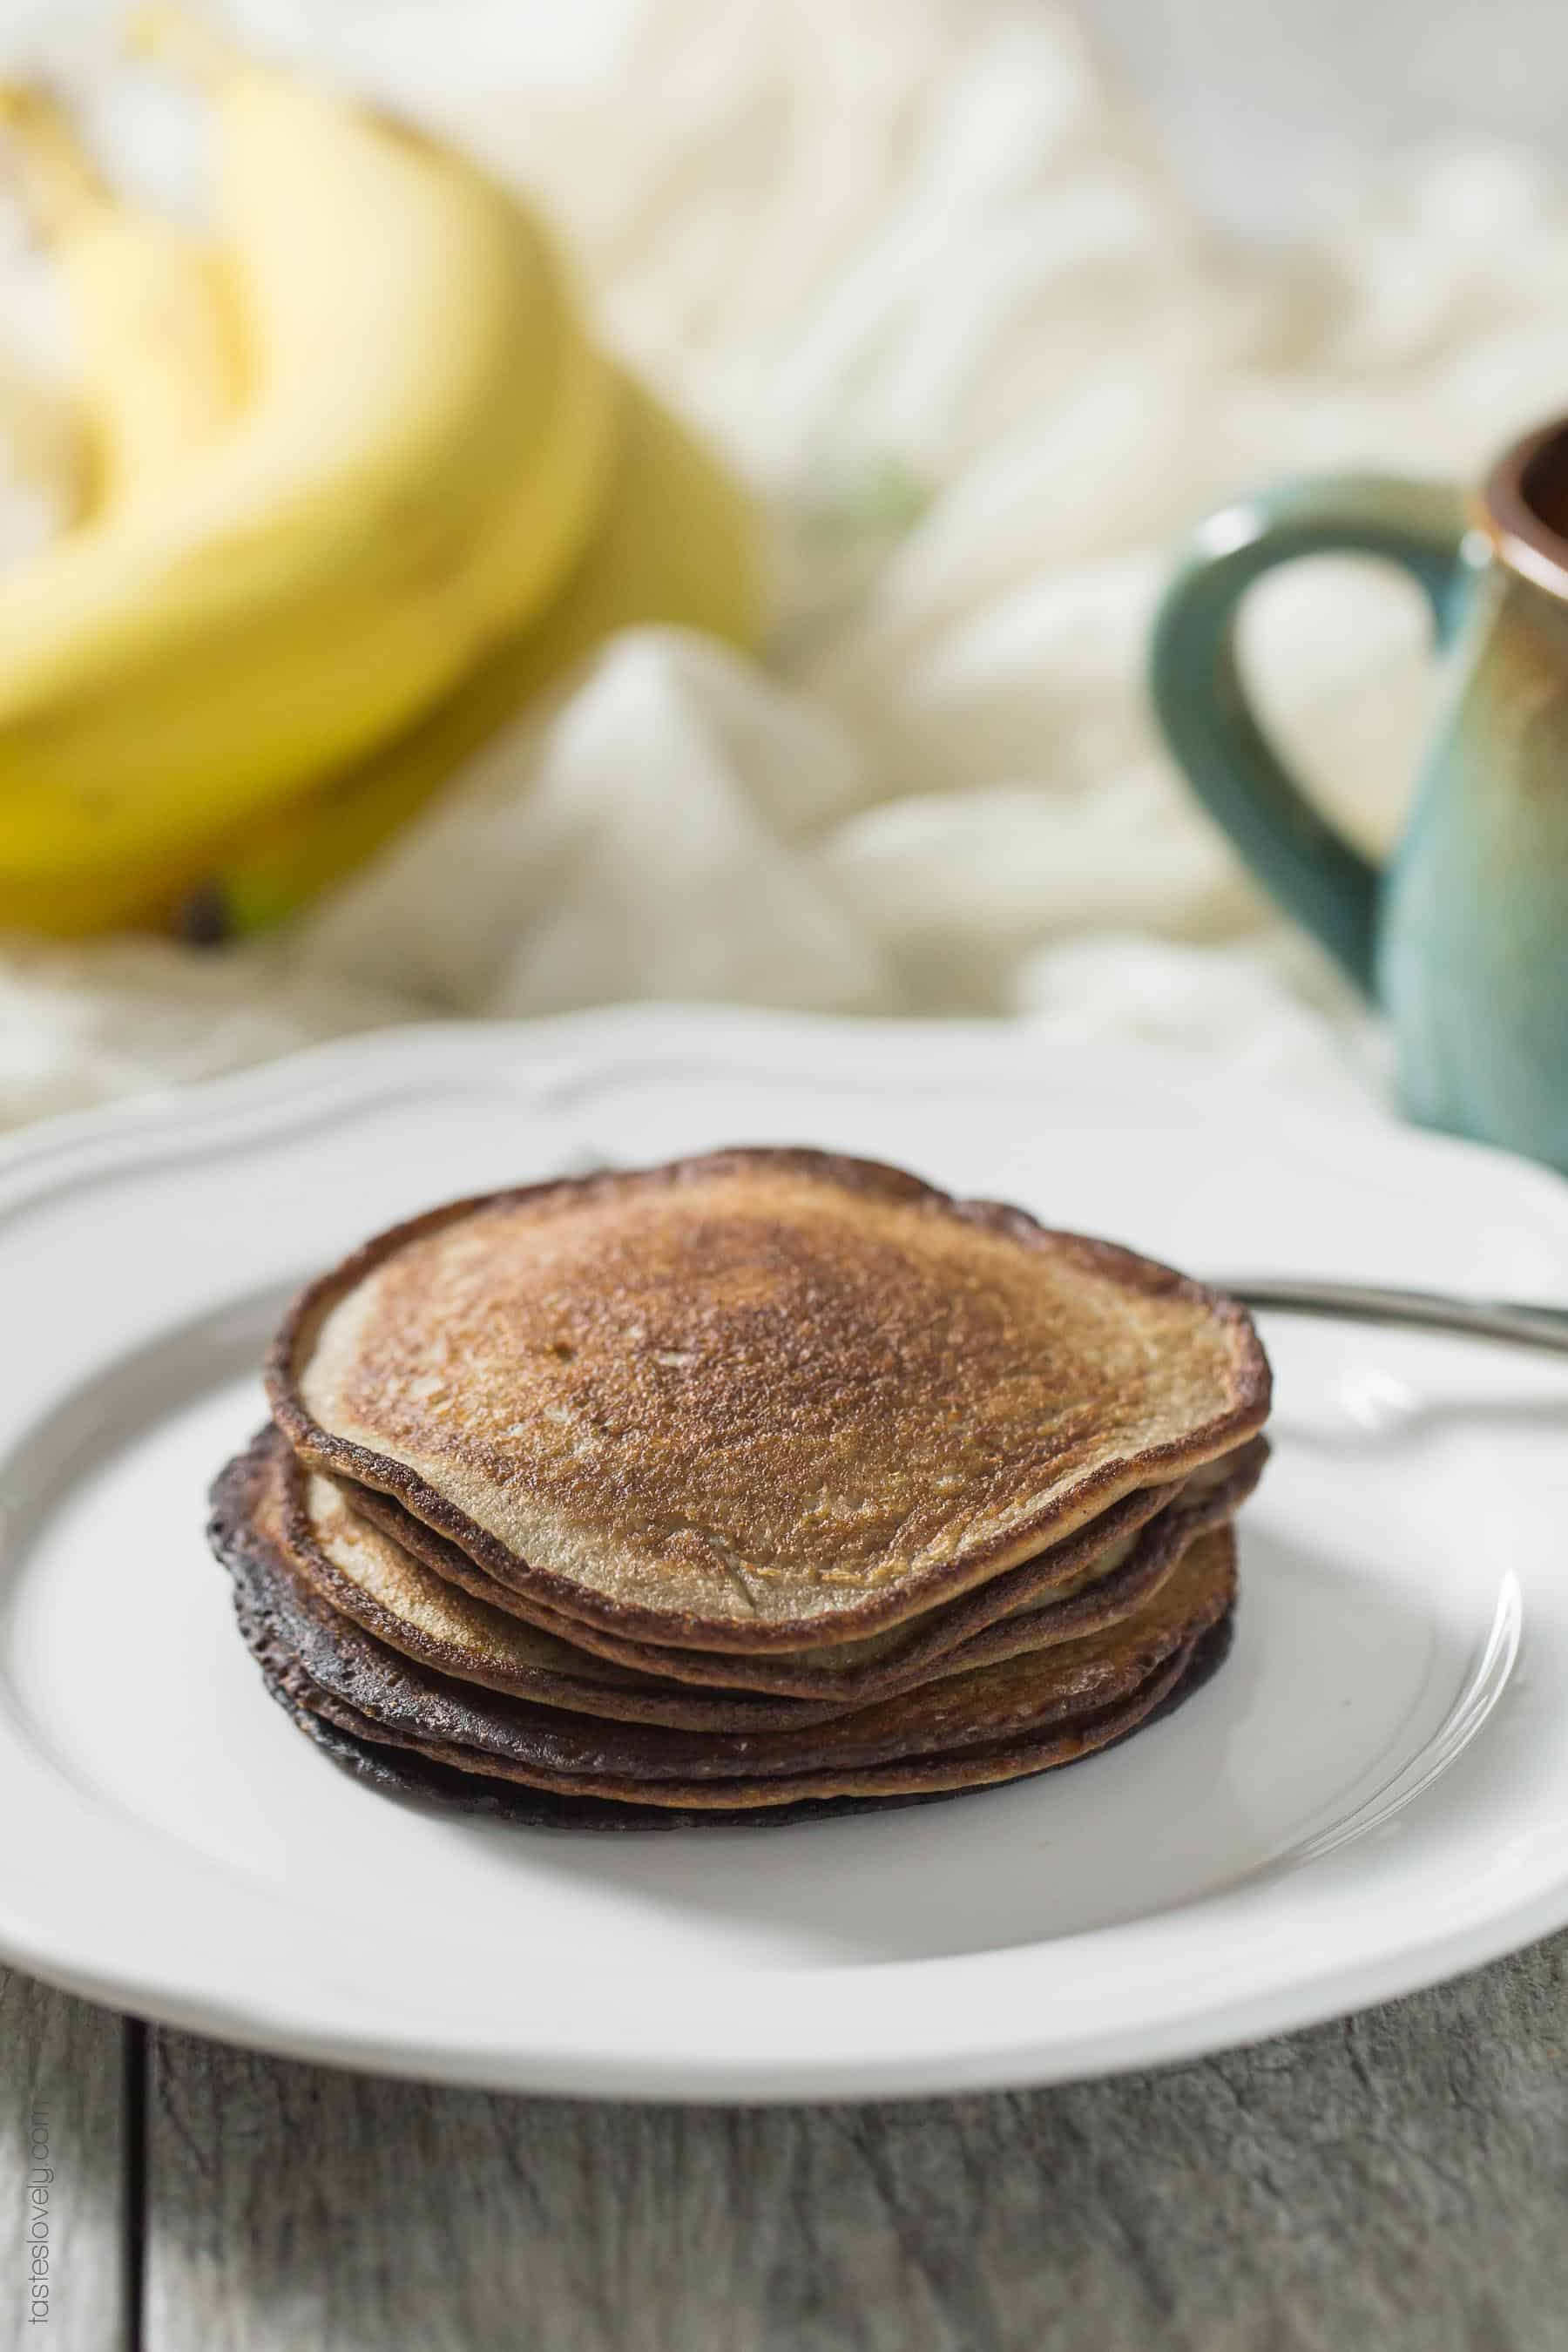 Paleo + Whole30 Banana Bread Pancakes - just 3 ingredients! No flour, no sugar, no butter. Paleo, Whole30, gluten free, grain free, dairy free